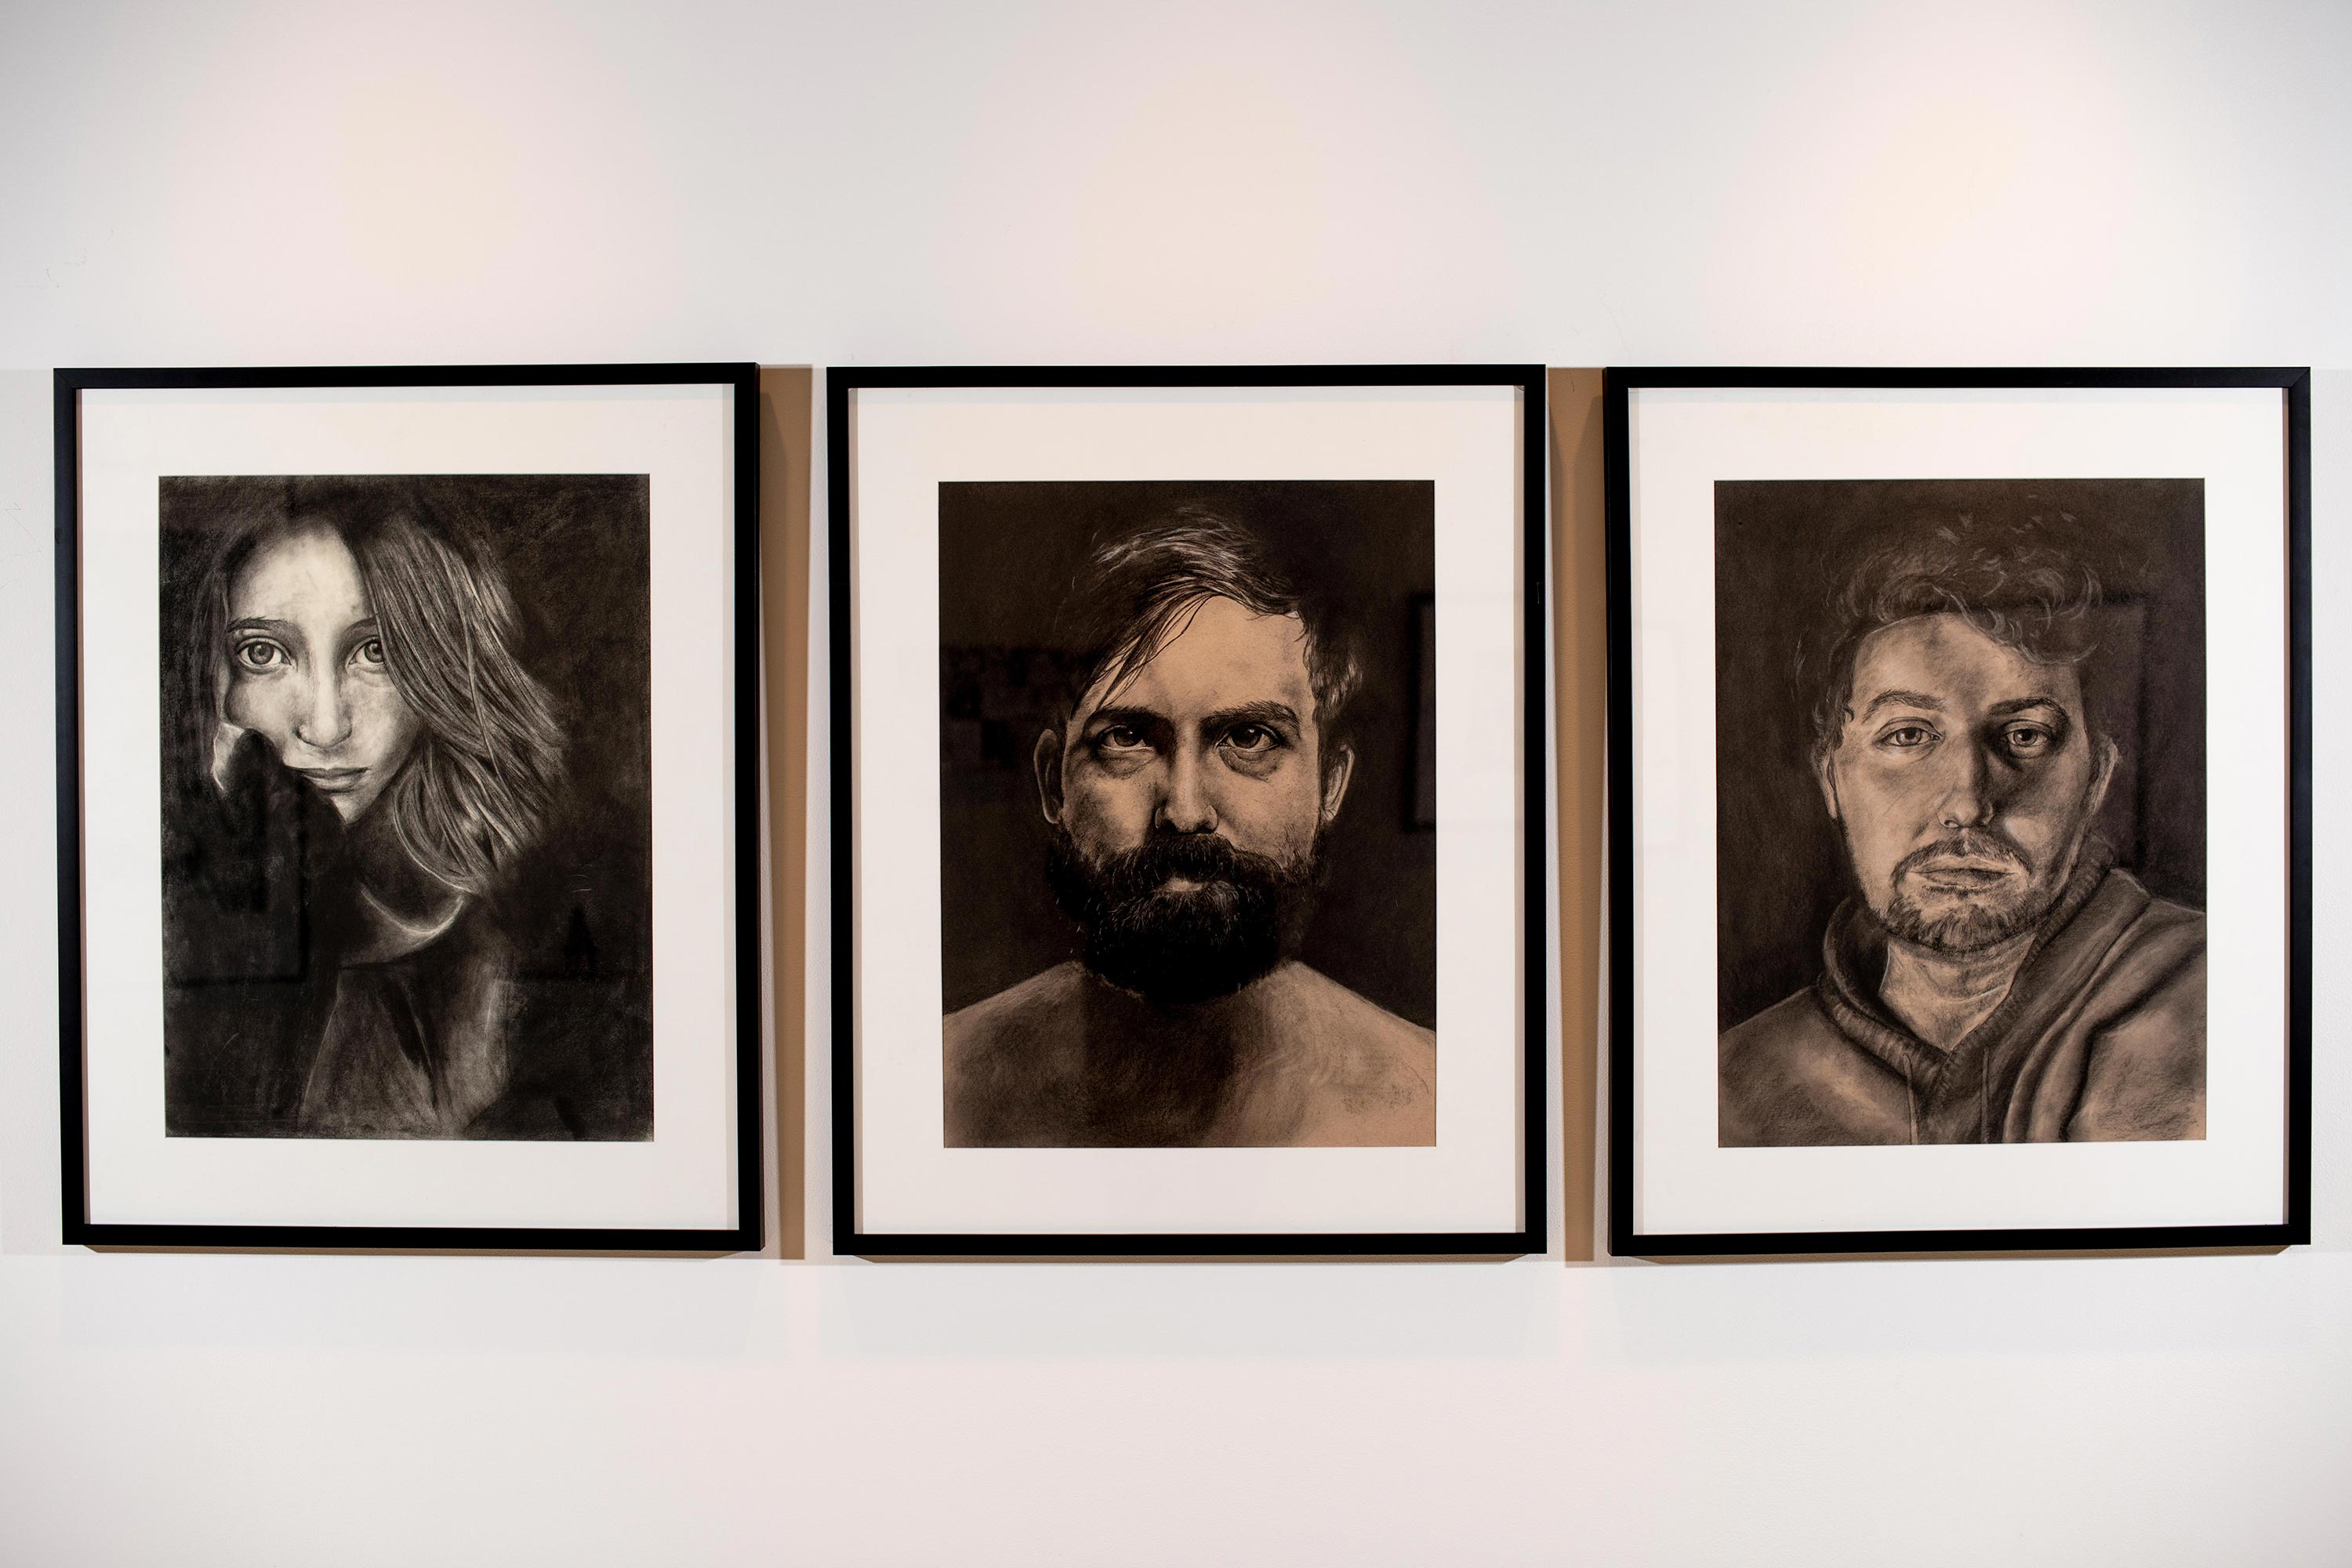 (from left to right) I.S., A.C.P., C.A.F. by Maya Silver [Charcoal/Paper, 2015-2018]